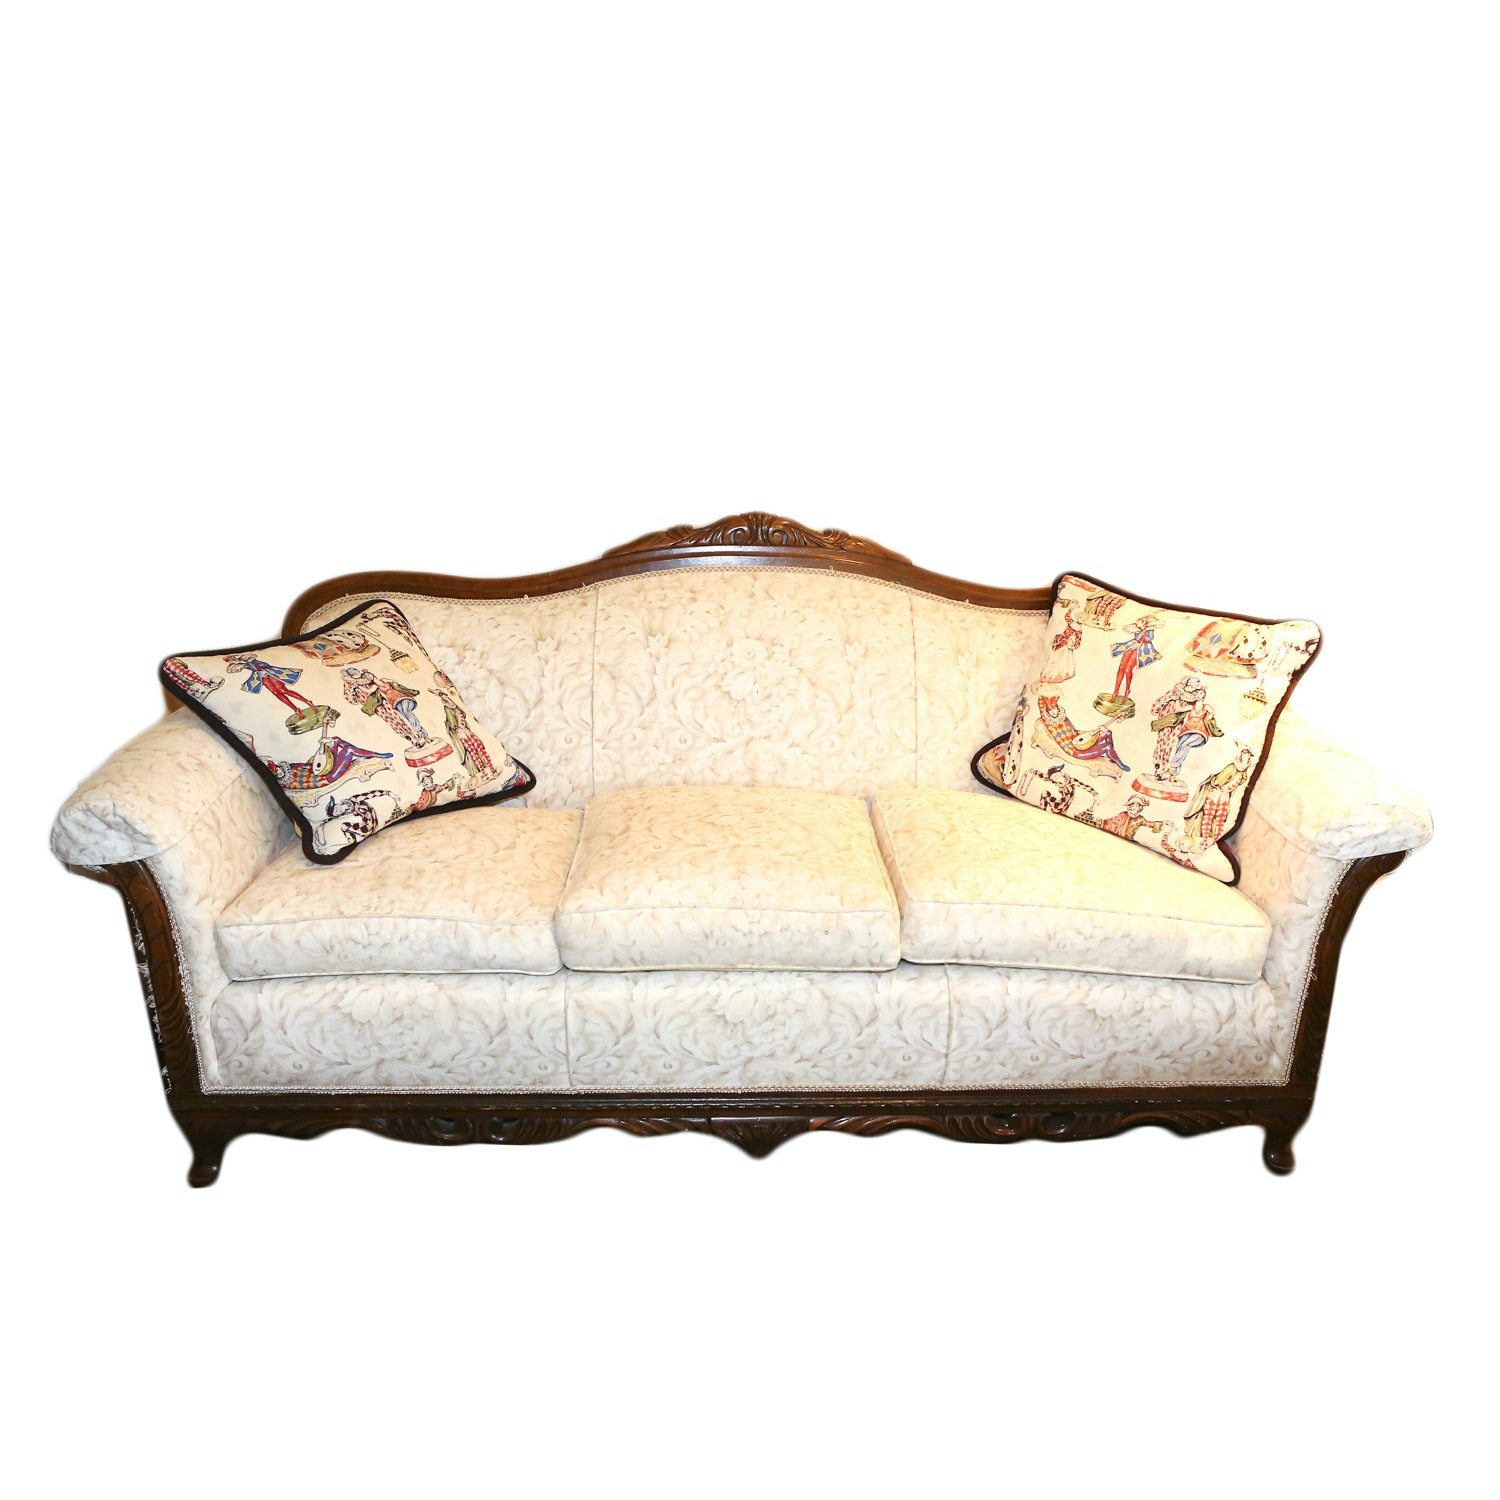 Queen Anne Style Camel Back Sofa